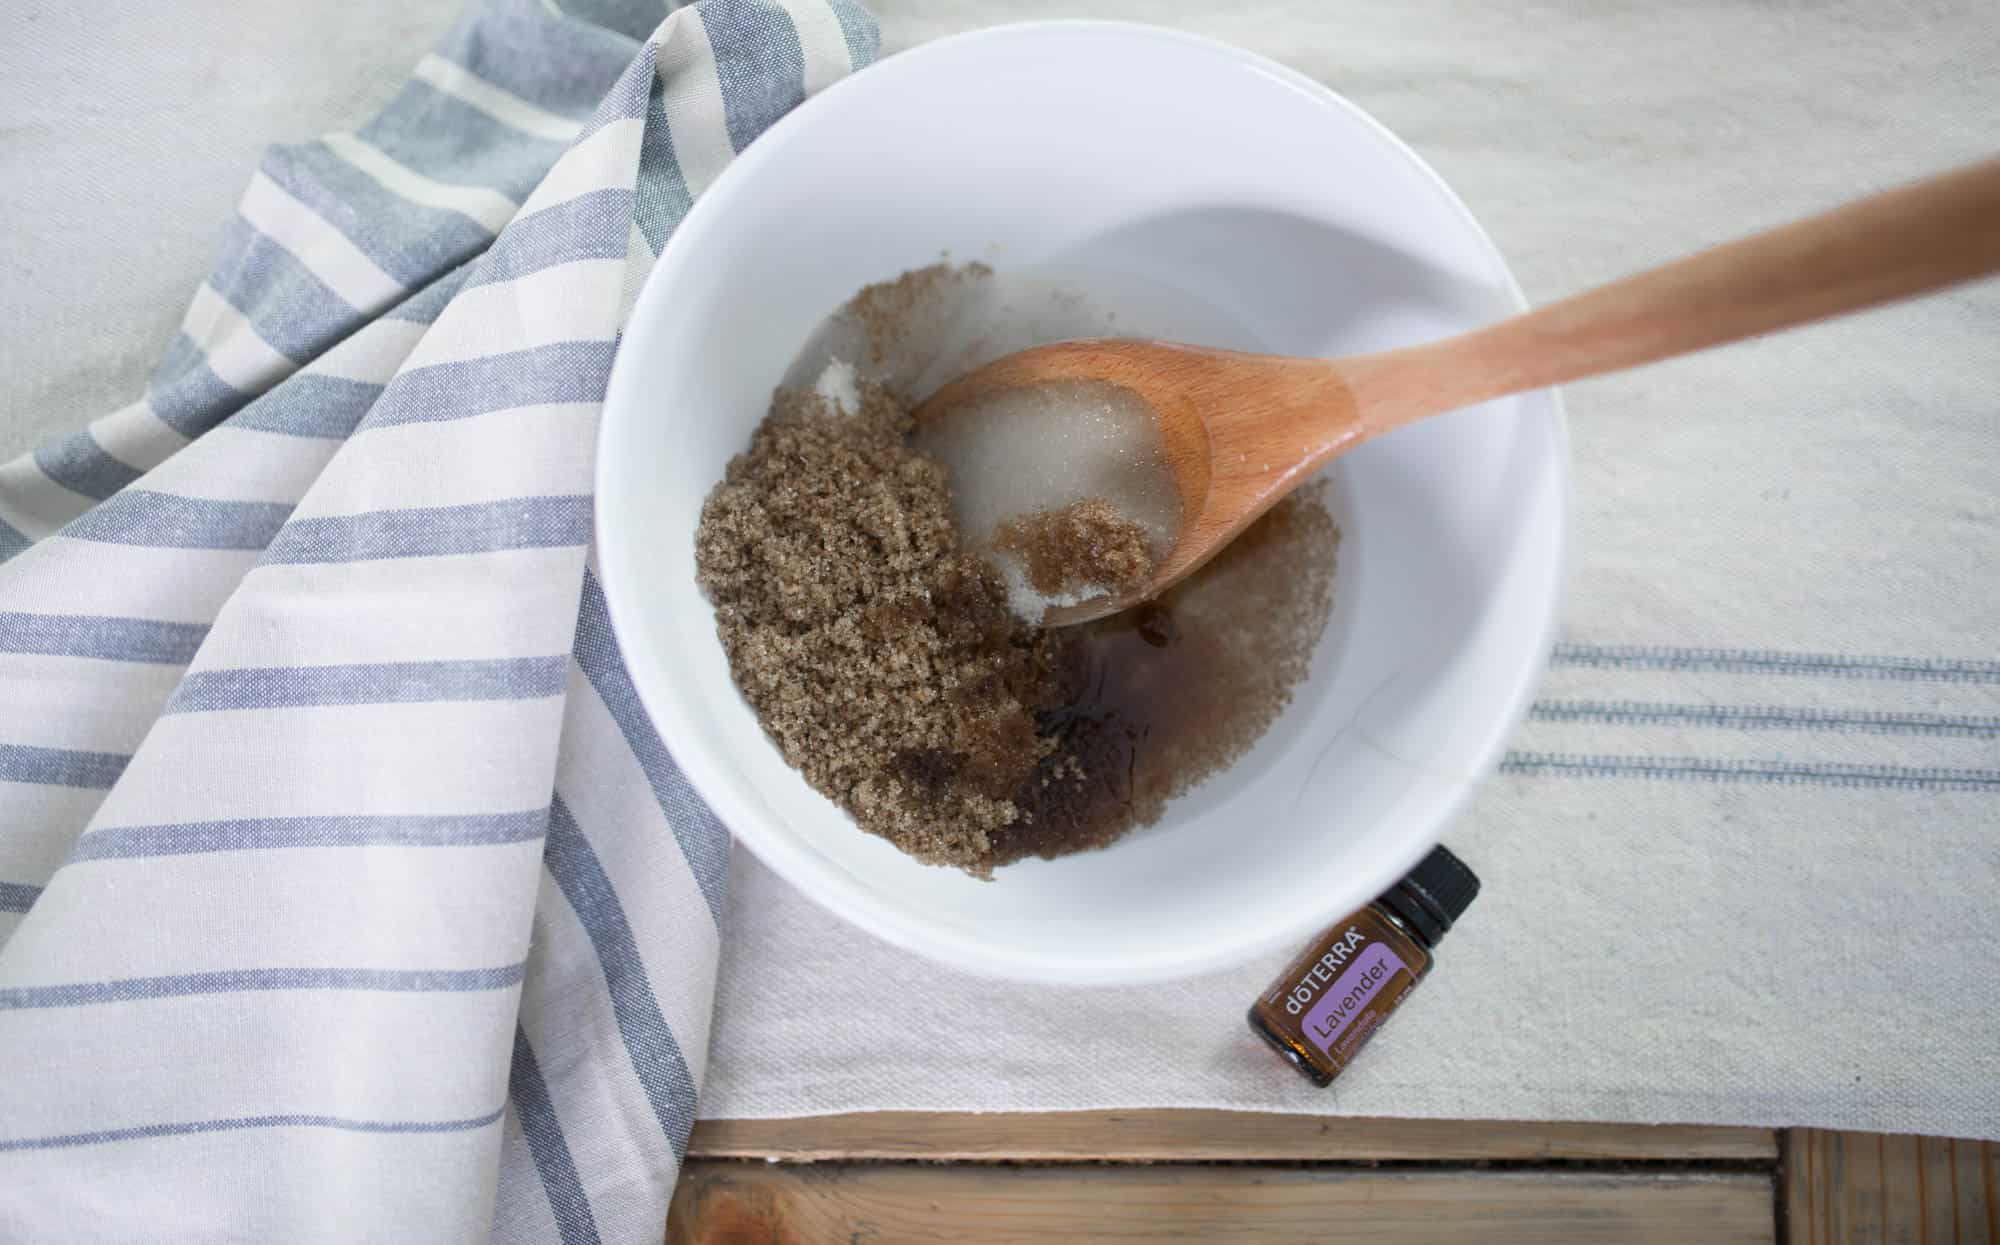 How to Make Homemade Sugar Scrub with Relaxing Lavender Essential Oil